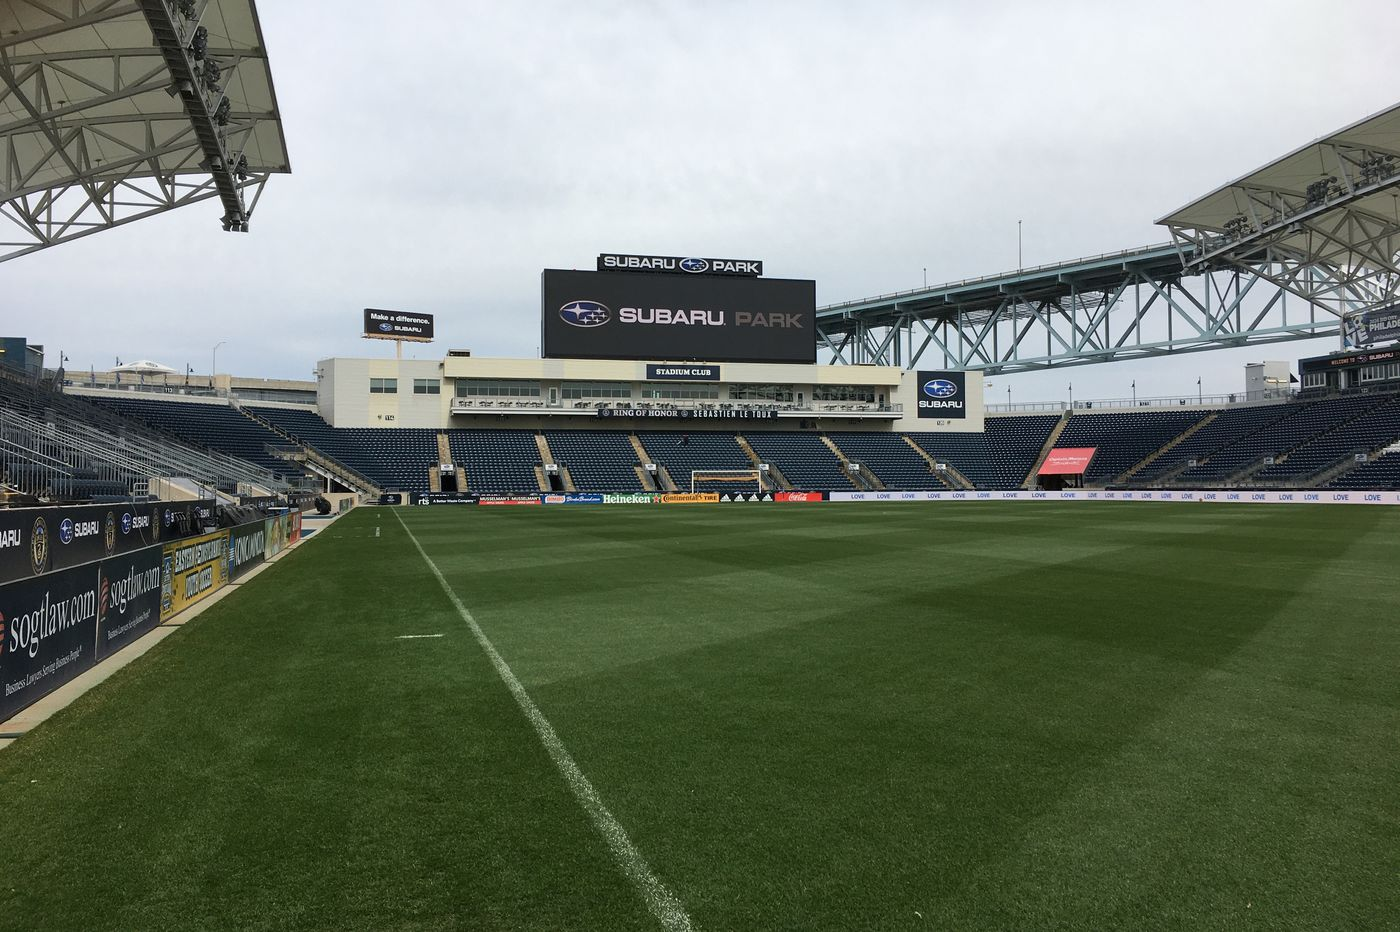 Philadelphia Union Creates Fund to Pay Subaru Park Workers While Soccer Games Are Suspended